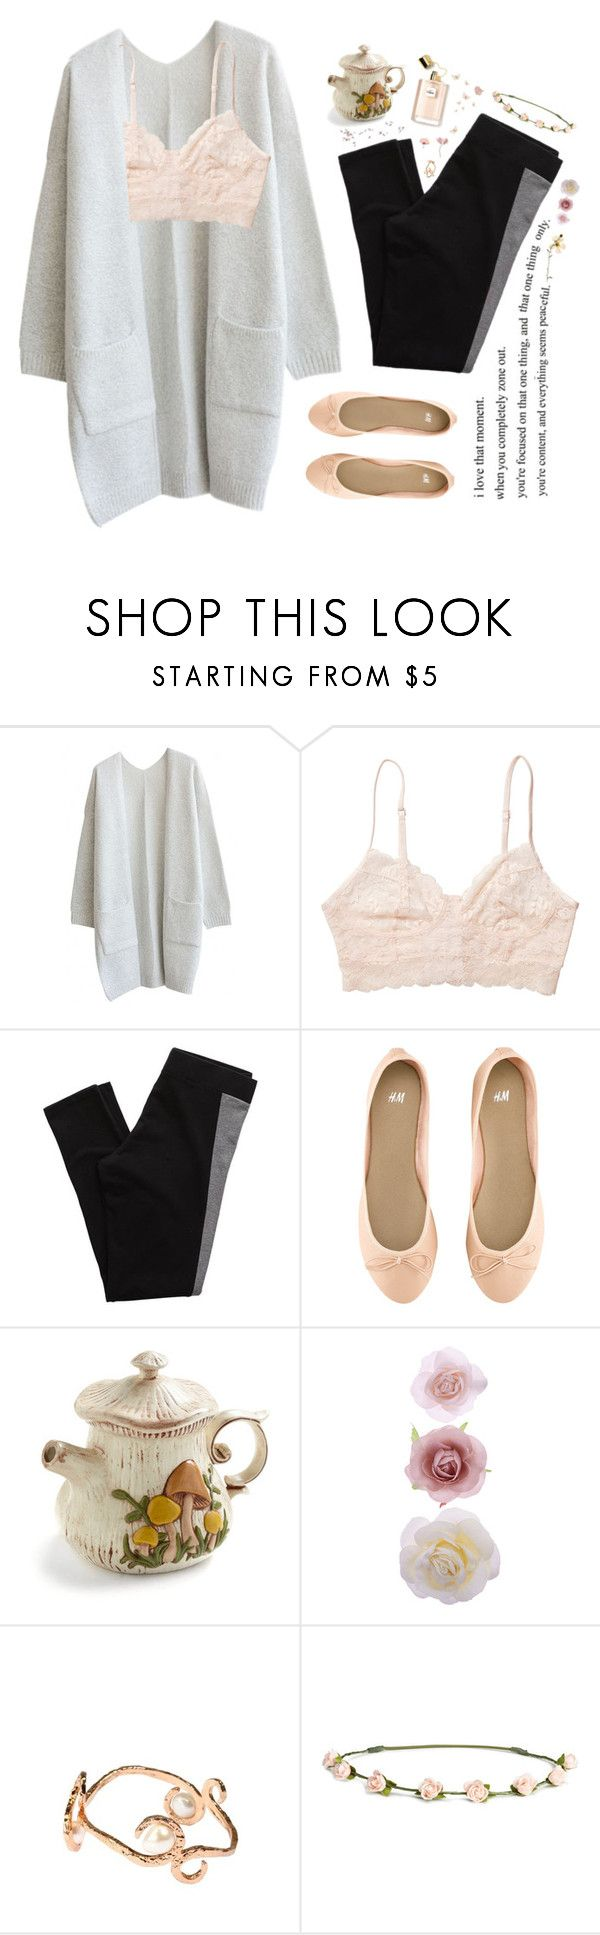 """""""Introspection"""" by skydancer18 ❤ liked on Polyvore featuring Monki, Aerie, H&M, Accessorize, ANDREA PICCINI, casual, Pink, Flowers, Leggings and bralette"""